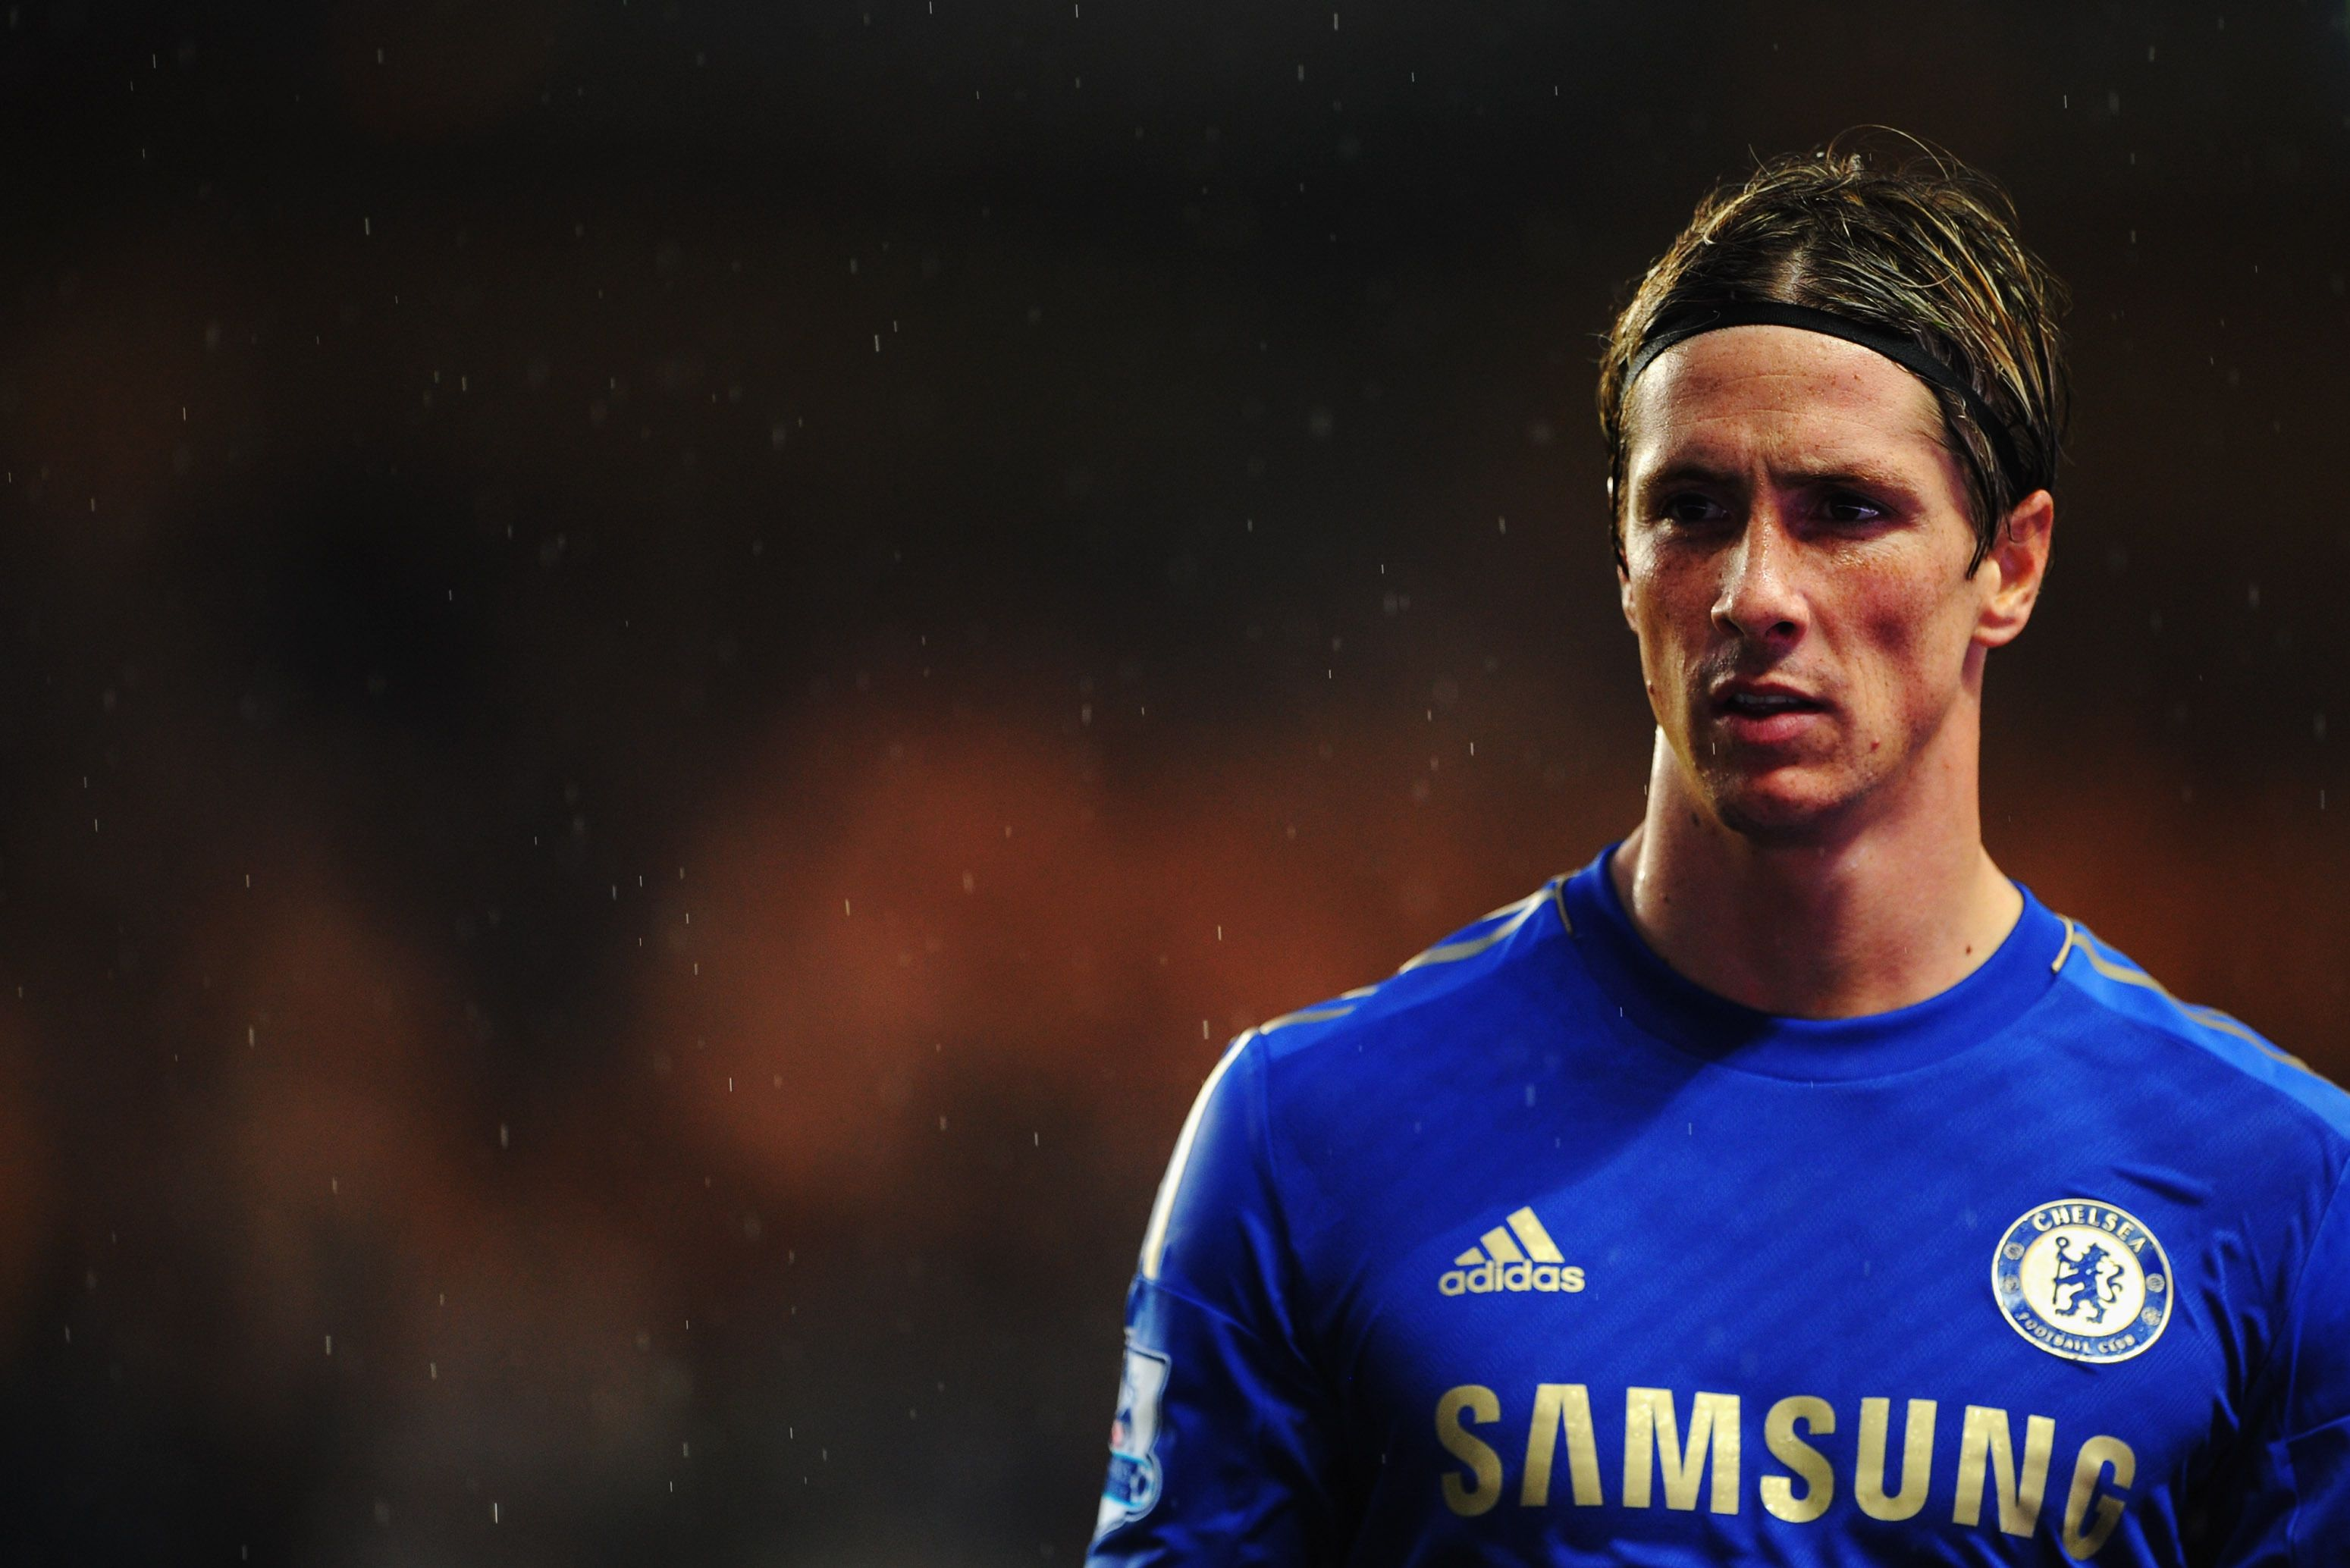 Chelsea, Sport, Fernando Torres, football, club, wallpapers , Pc backgrounds, free photos - HD wallpaper desktop backgrounds